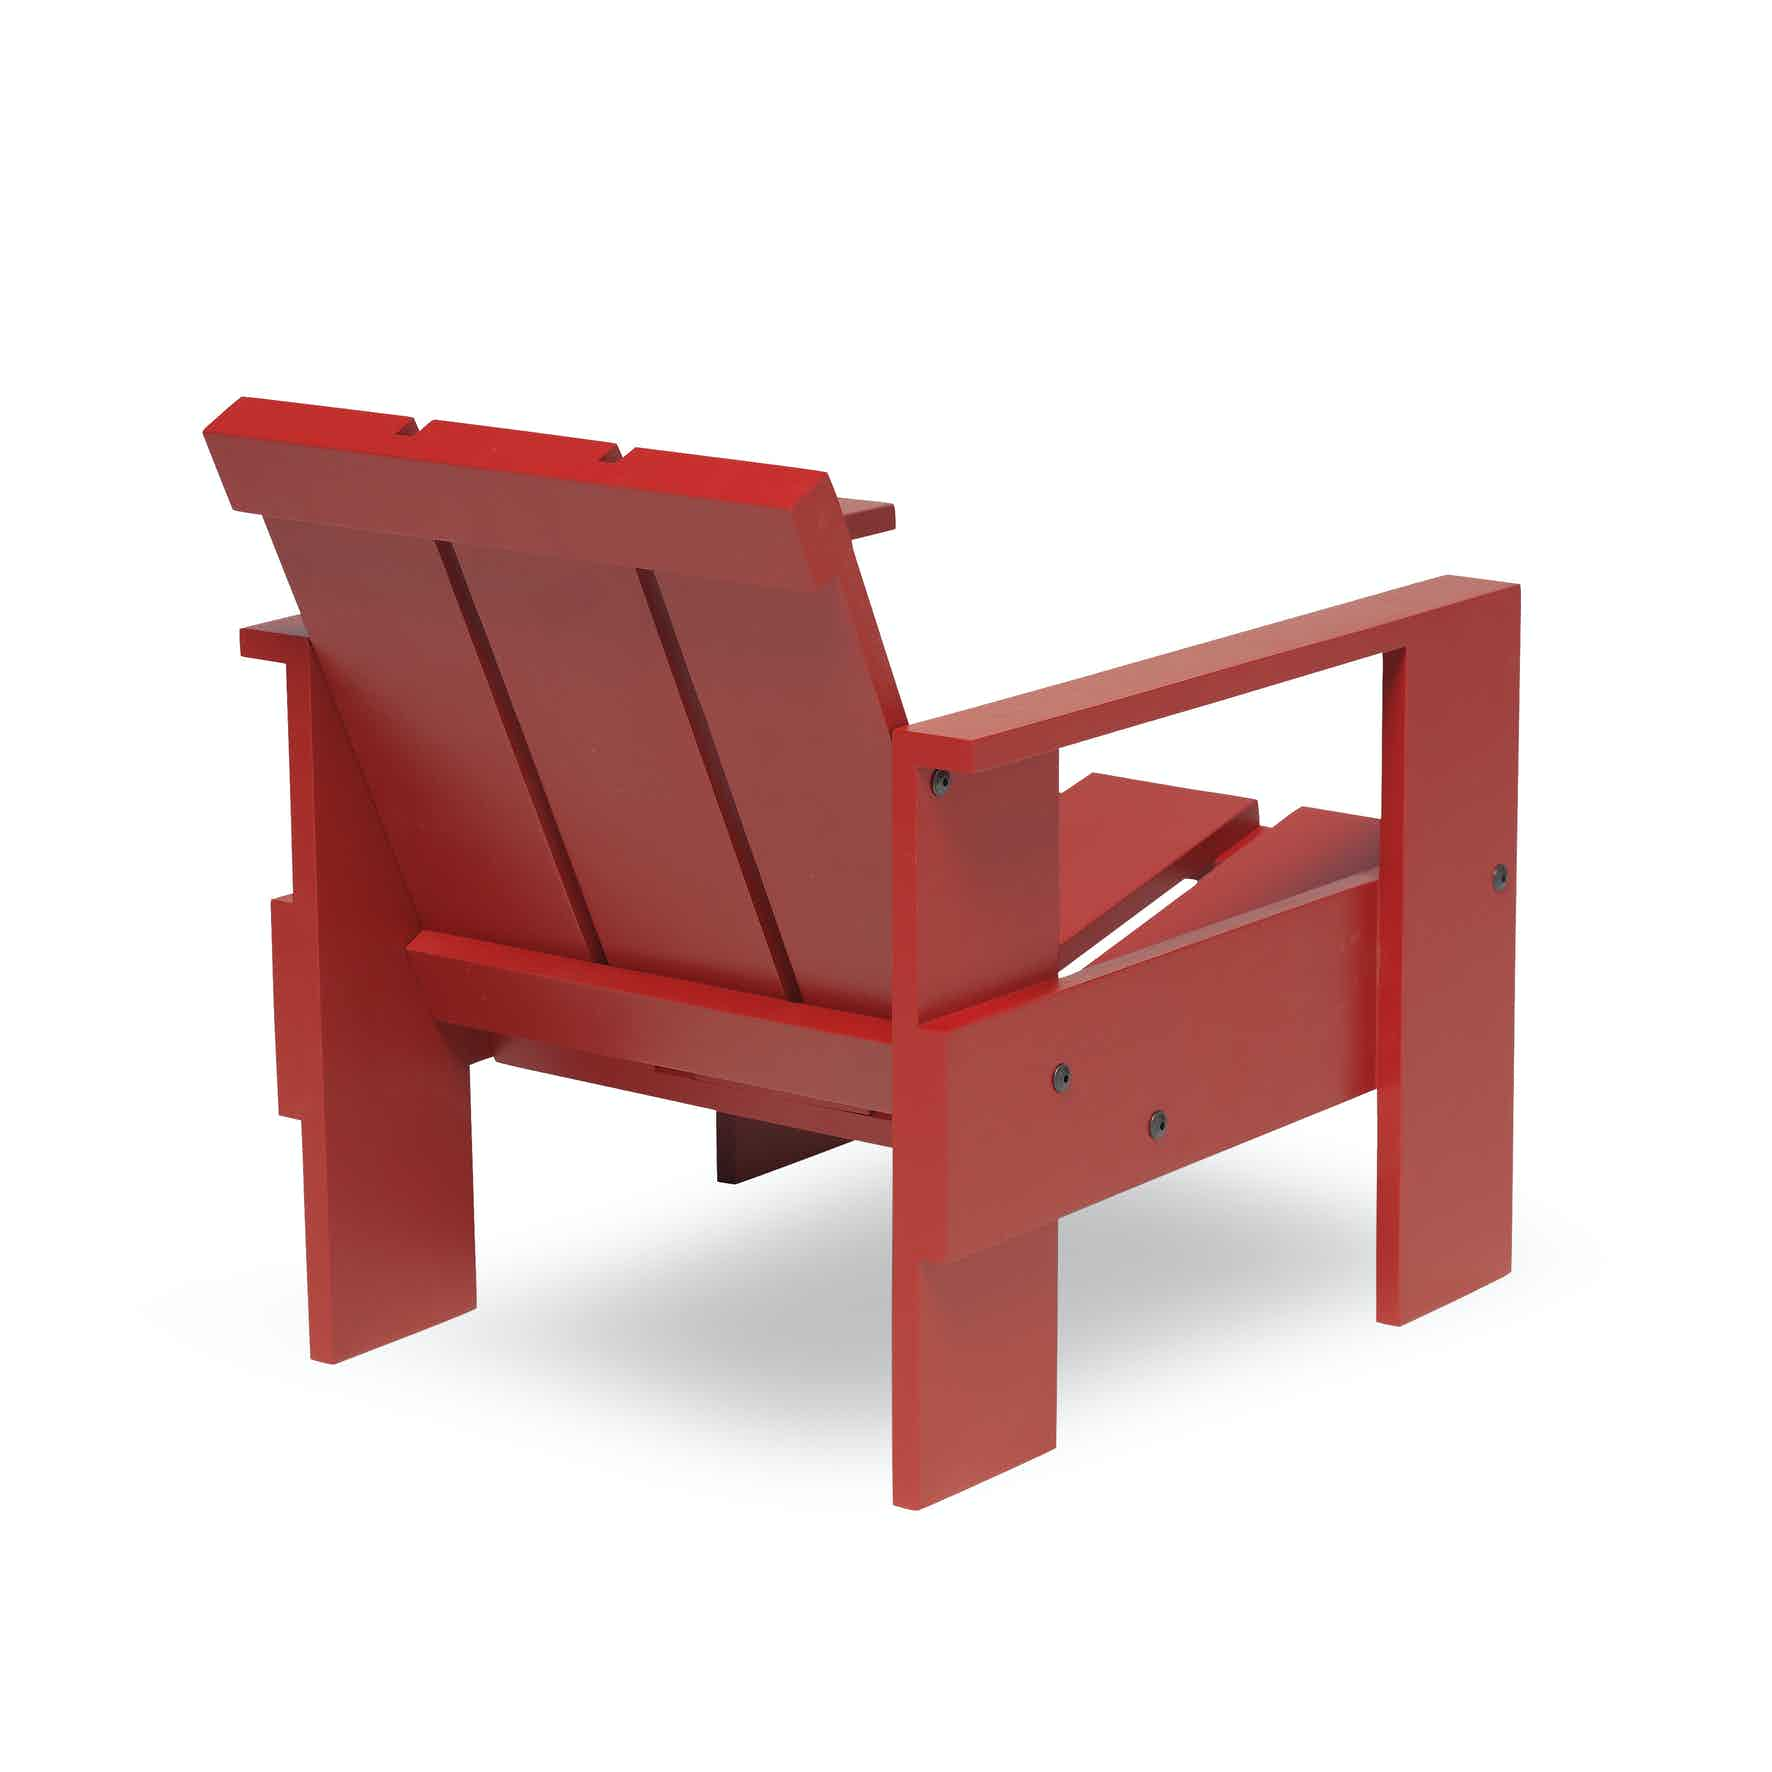 Spectrum Furniture Red Back Crate Junior Chair Haute Living